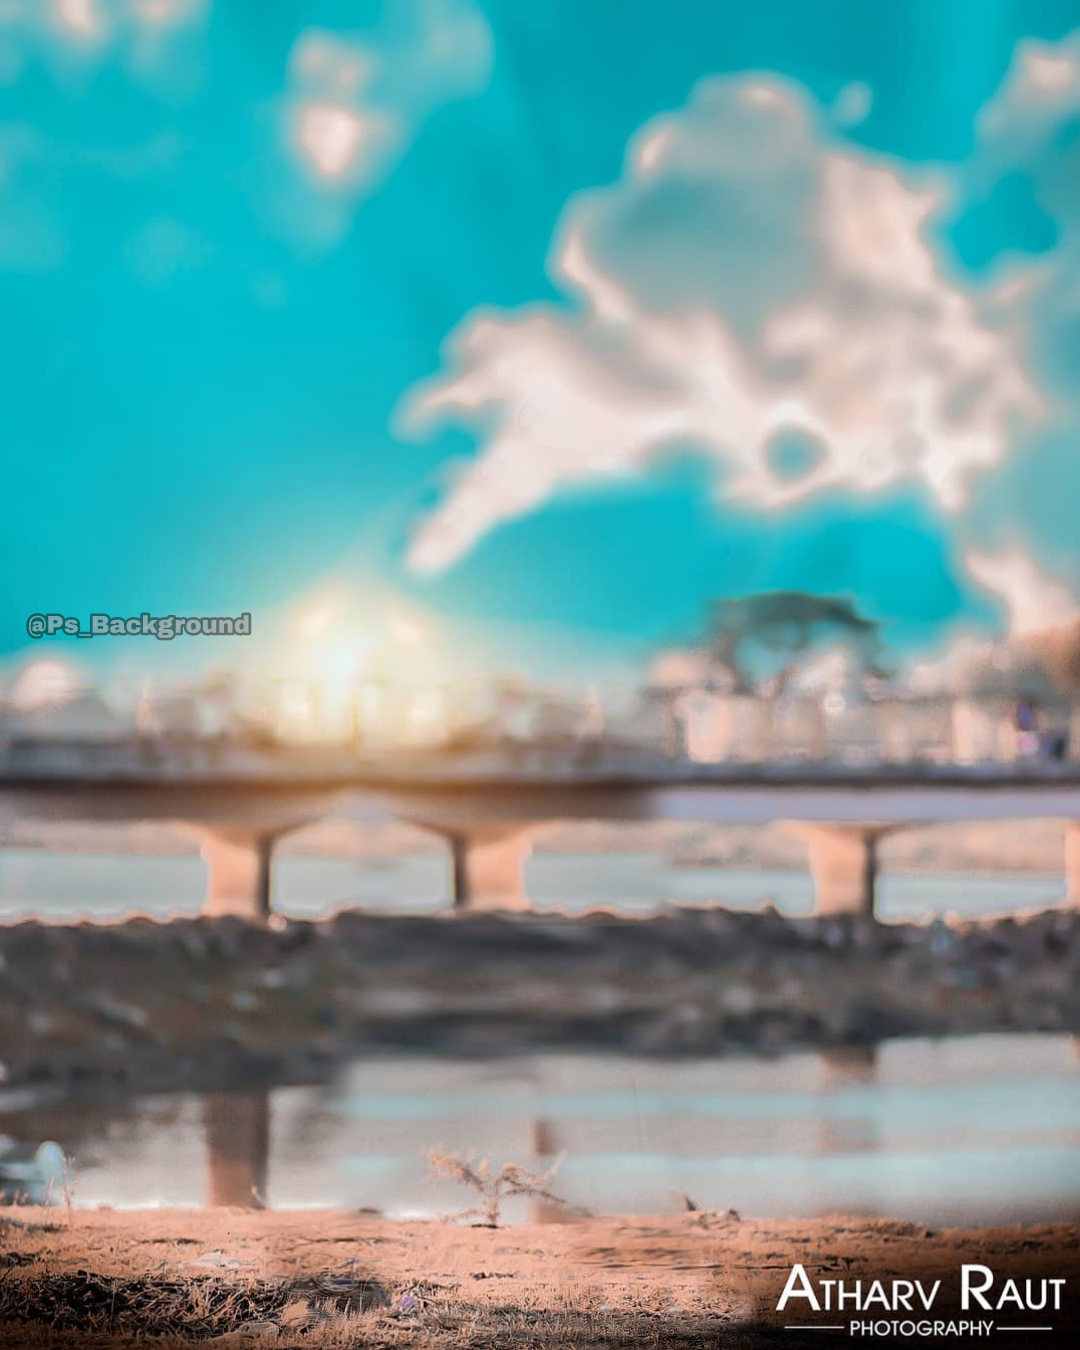 500 Top New Cb Background Zip File 2019 Blurred Background Photography Dslr Background Images Best Background Images